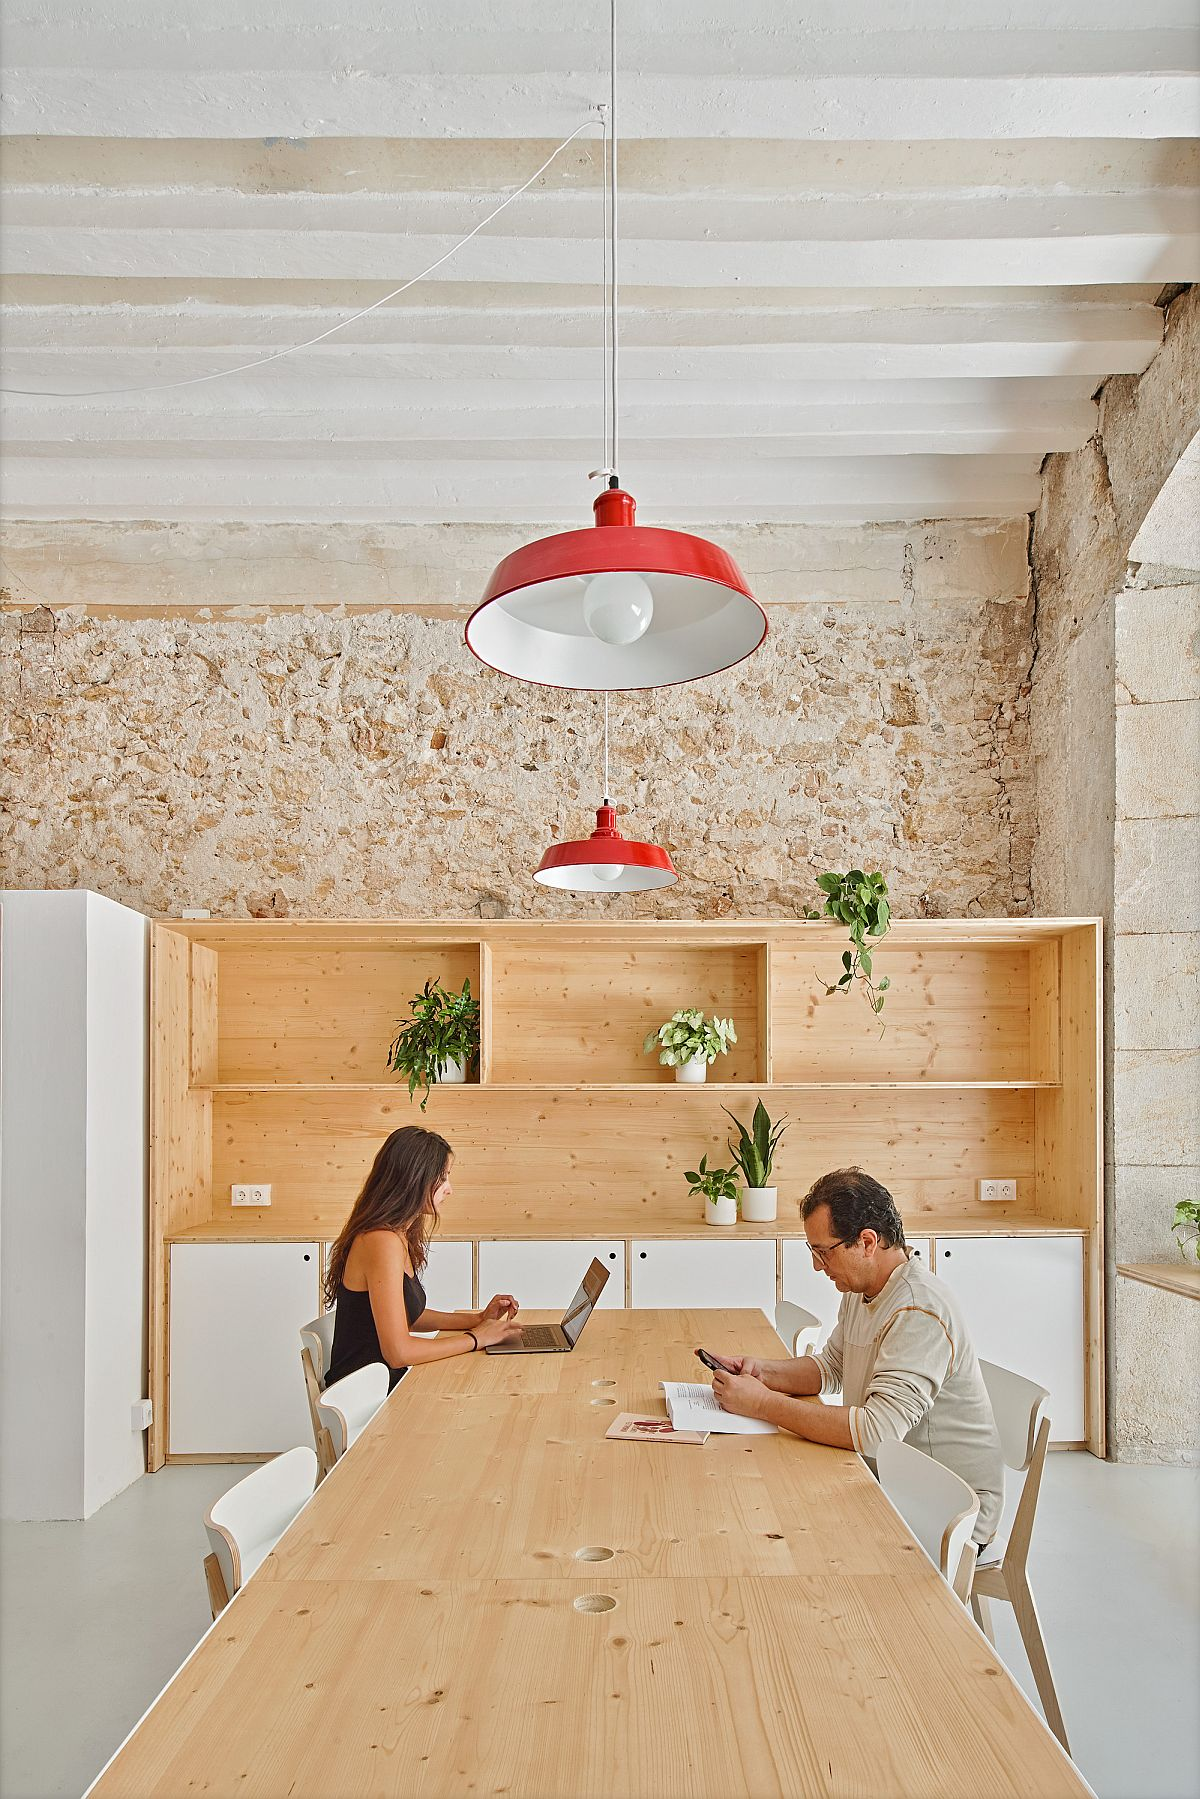 Pendant-lights-in-red-add-color-to-the-fabulous-interior-in-brick-white-87437